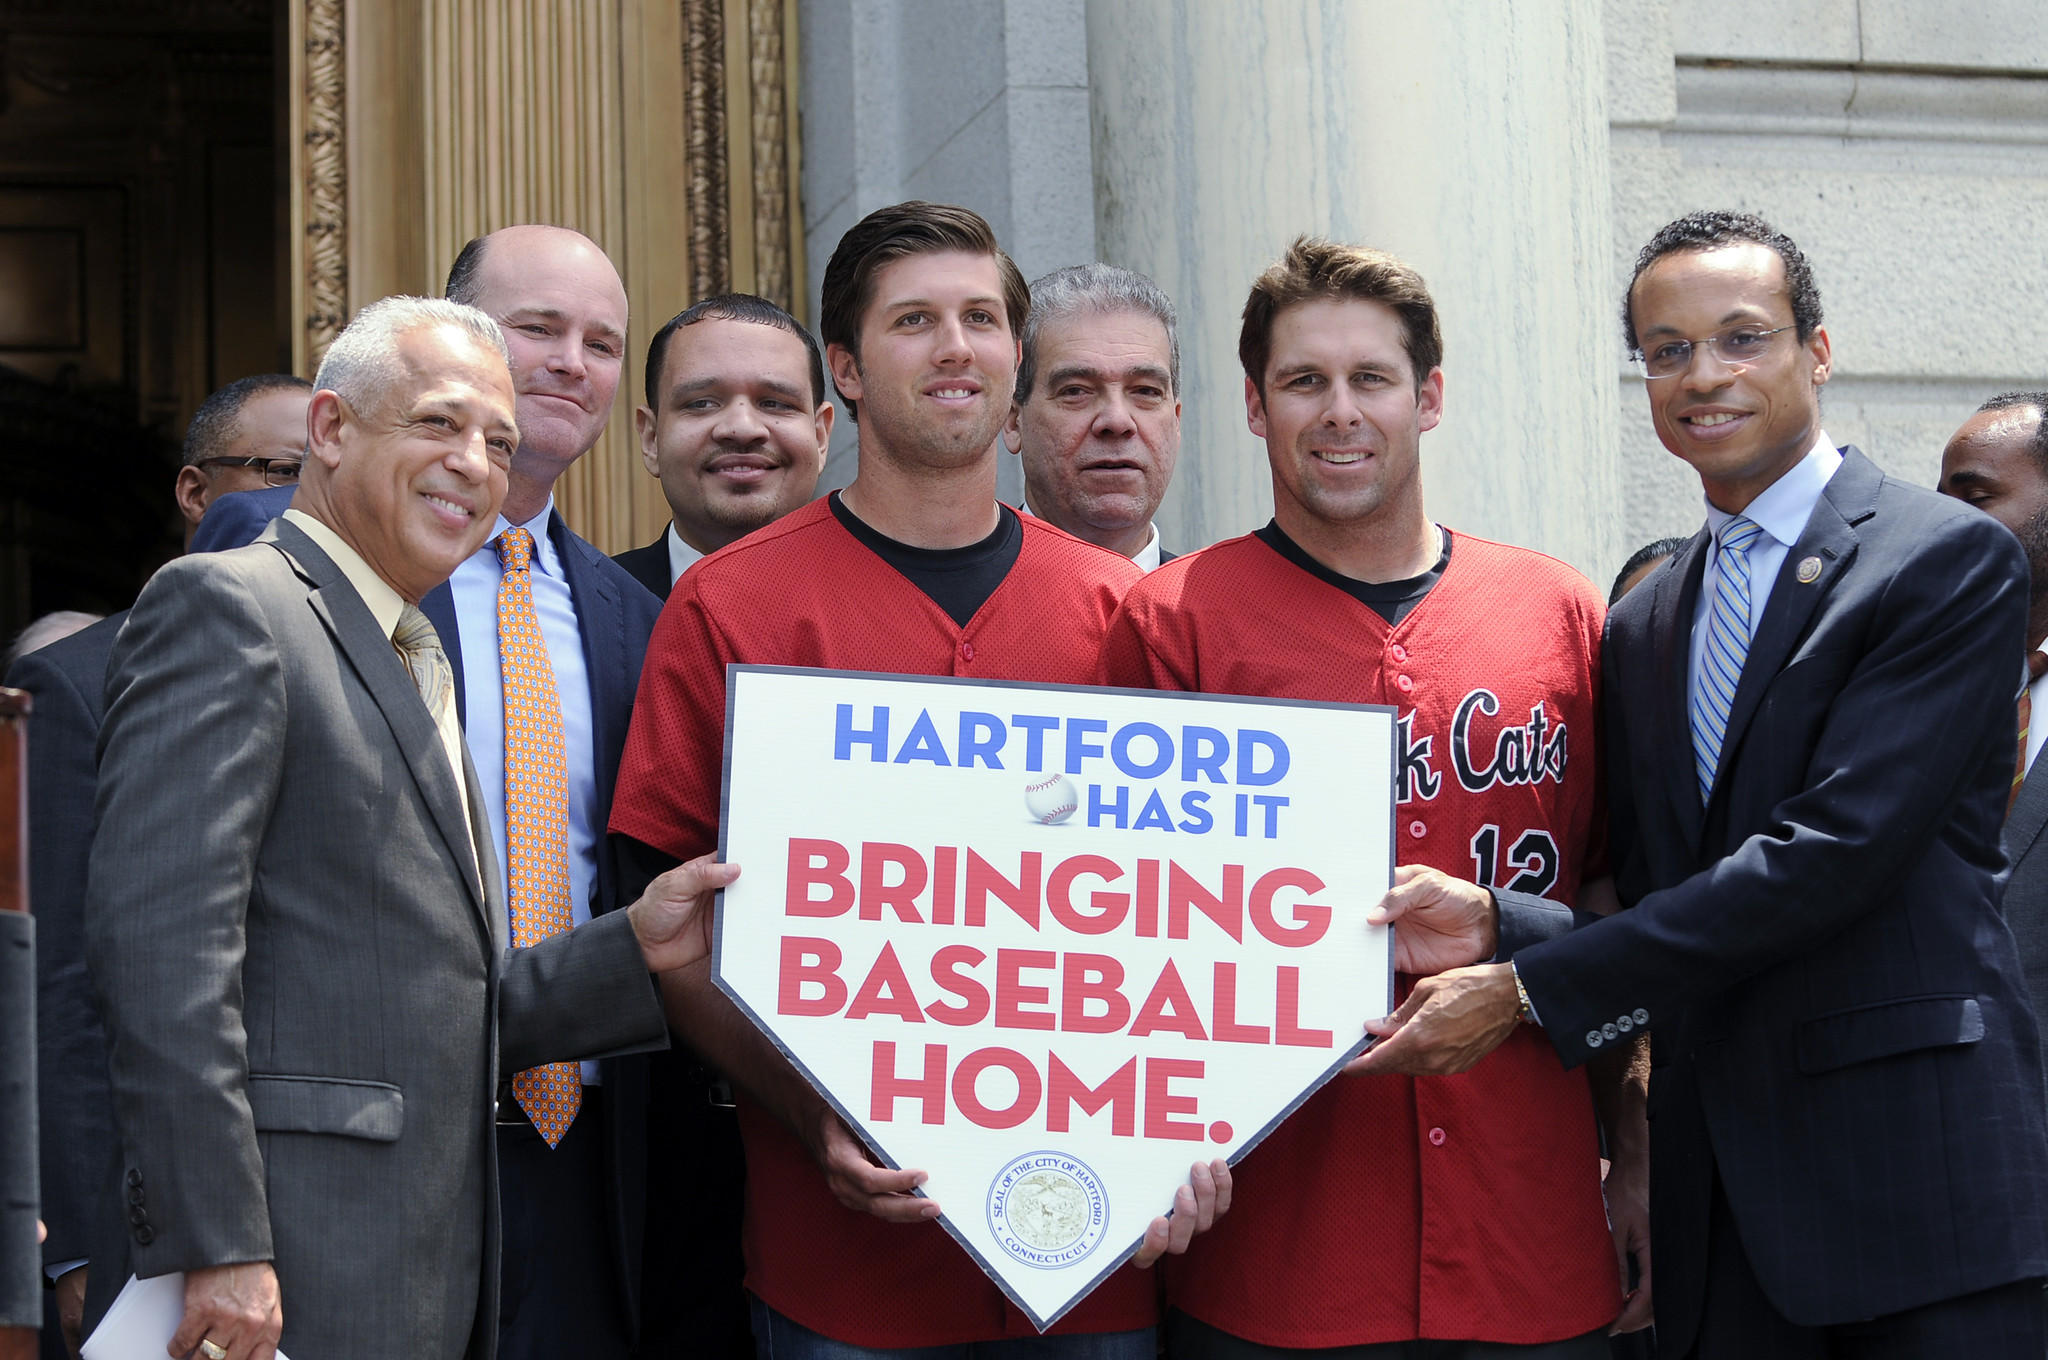 Holding a sign reading, Hartford Has It, Bringing Baseball Home, are Hartford Mayor Pedro Segarra, Rock Cats owner Josh Solomon, Hartford Common Council member Raul DeJesus, Rock Cats pitcher Pat Dean, State Rep. Edwin Vargas, Rock Cats infielder Nate Hanson, and Common Council President Shawn Woodin (l-r) after a press conference announcing the city's plan to build a stadium for the New Britain Rock Cats in Hartford. CLOE POISSON|cpoisson@courant.com ORG XMIT: B583778881Z.1